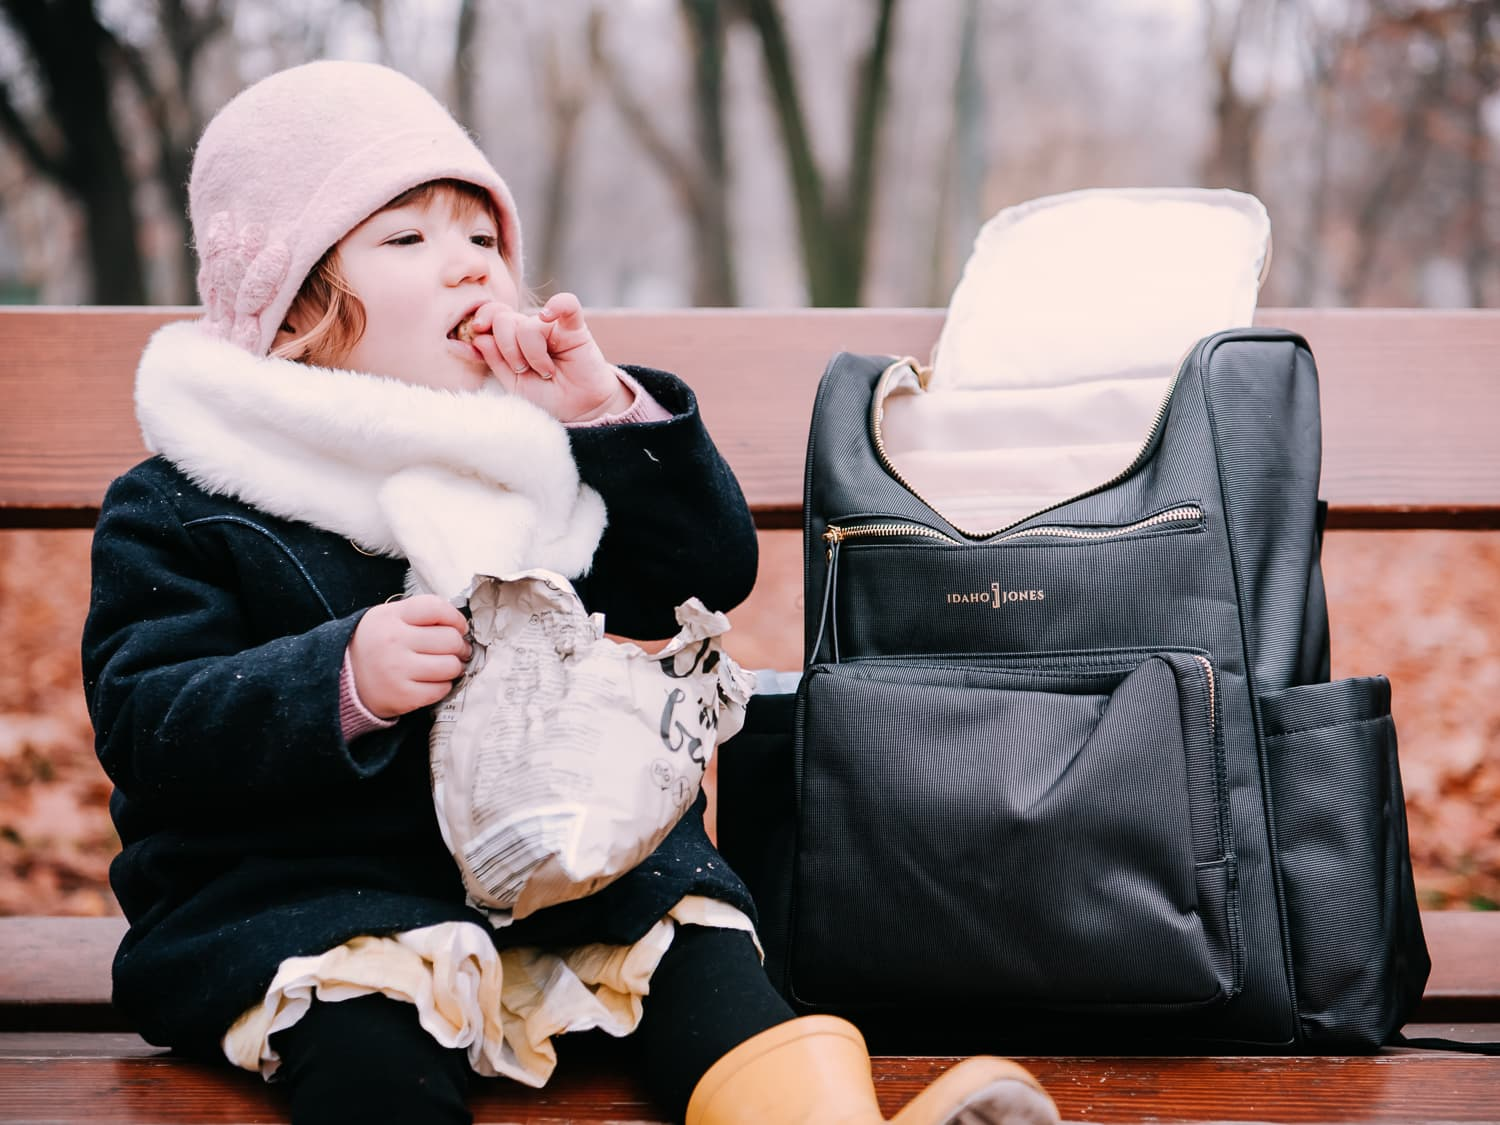 Snack time with Idaho Jones. Our Review of the Gallivant Baby Diaper Bag